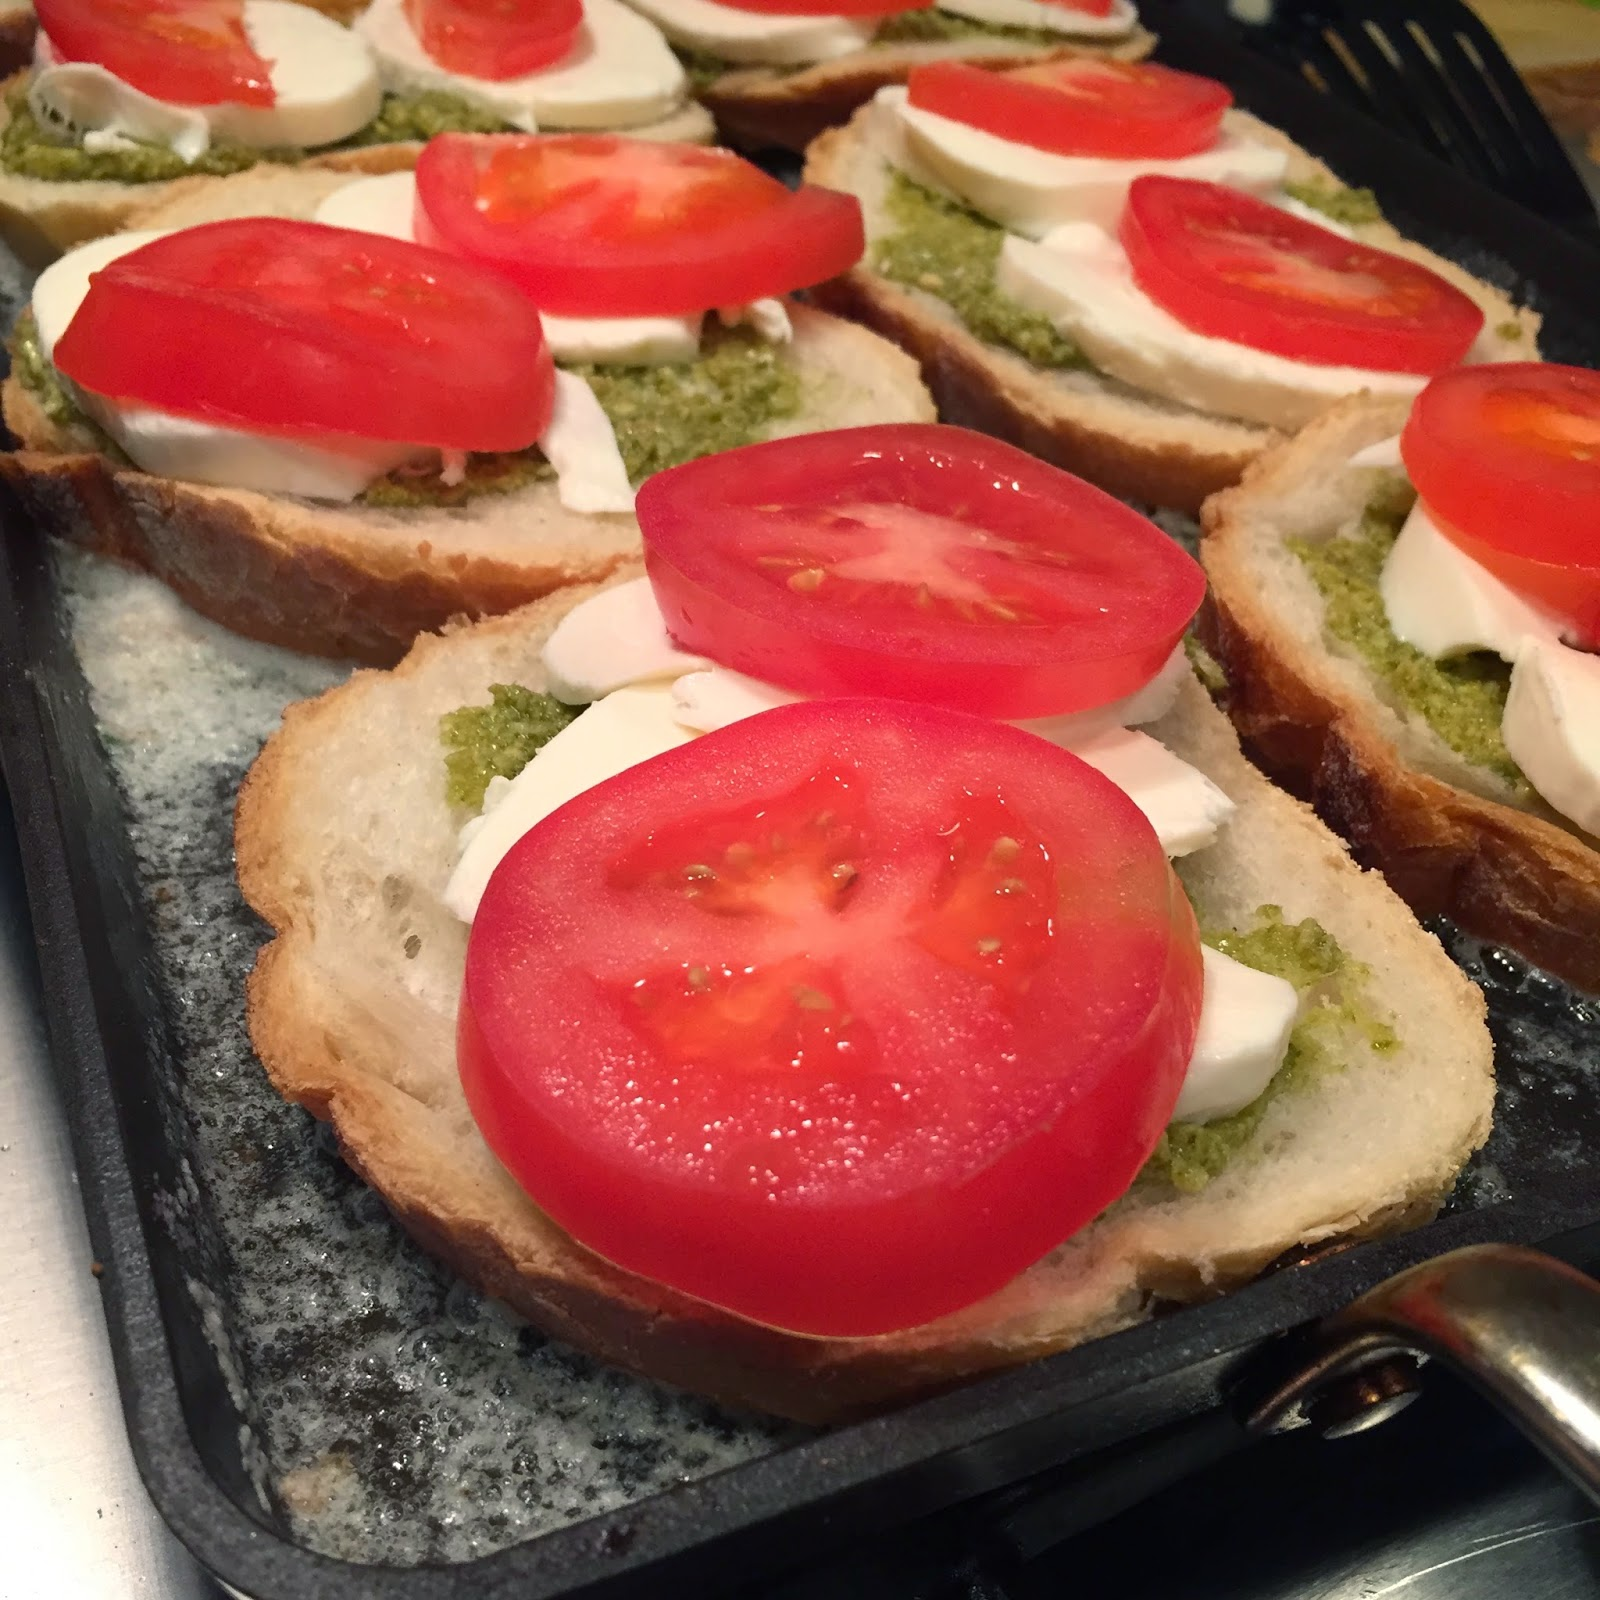 Food Impressions: Grilled Tomato Mozzarella Sandwiches